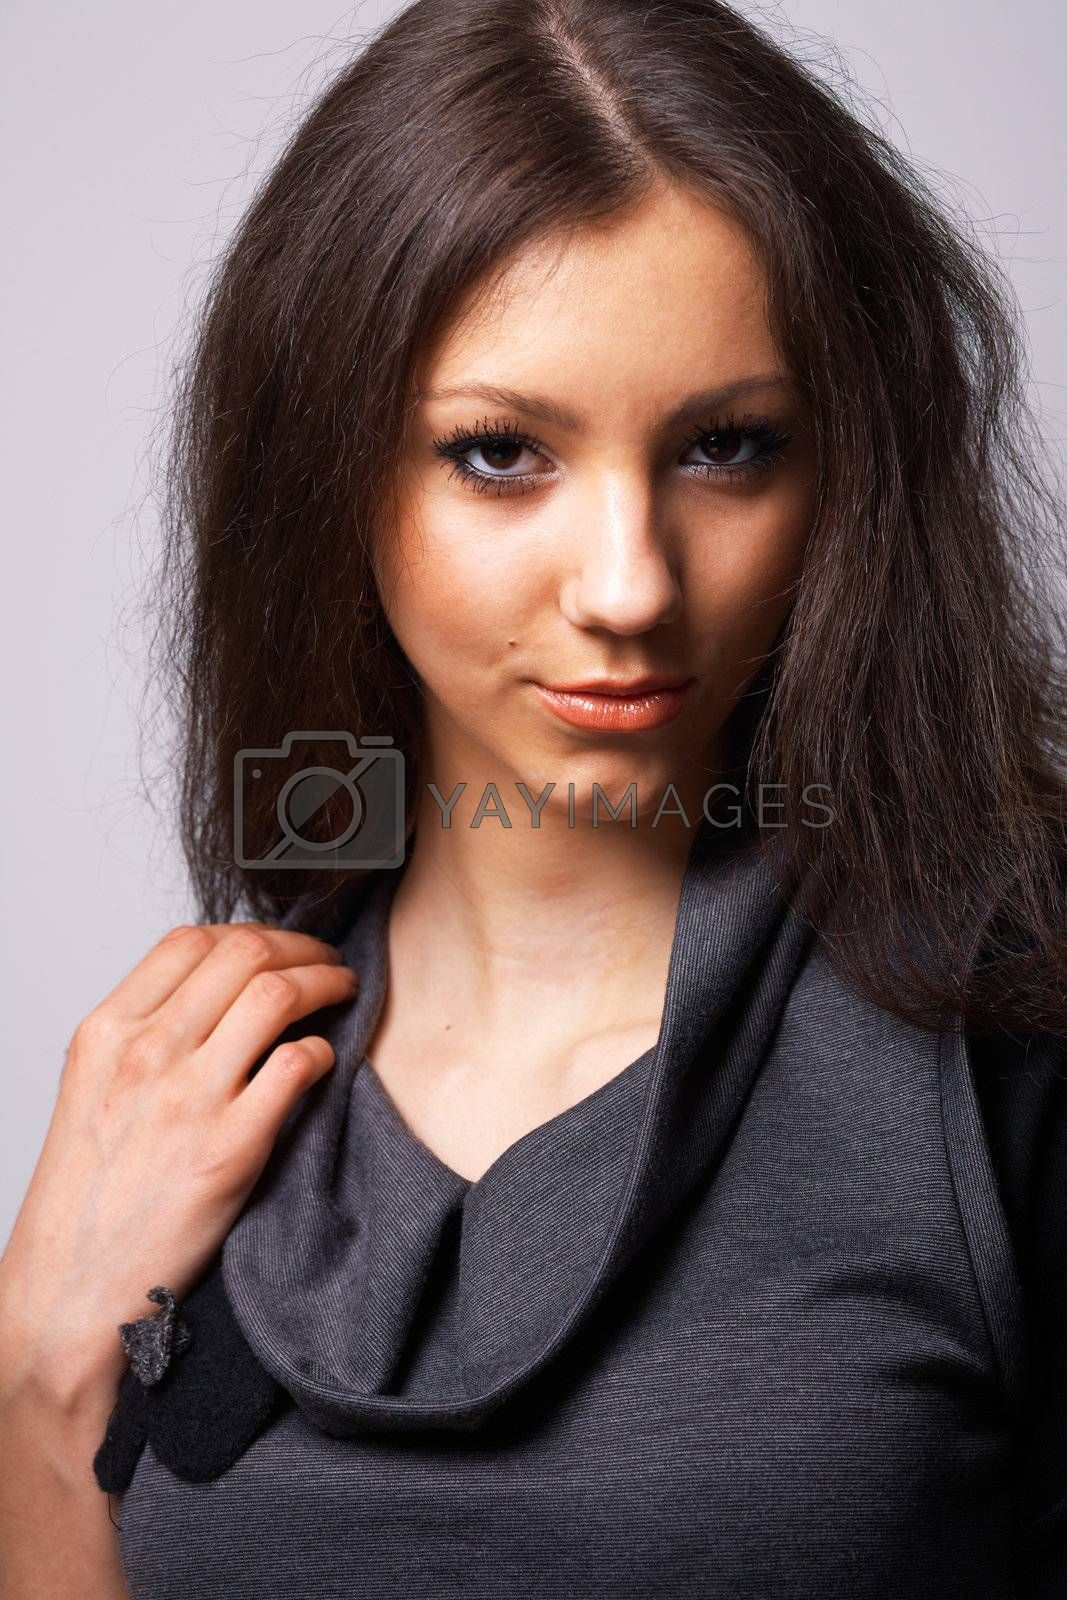 Close-up portrait of a beautiful young model